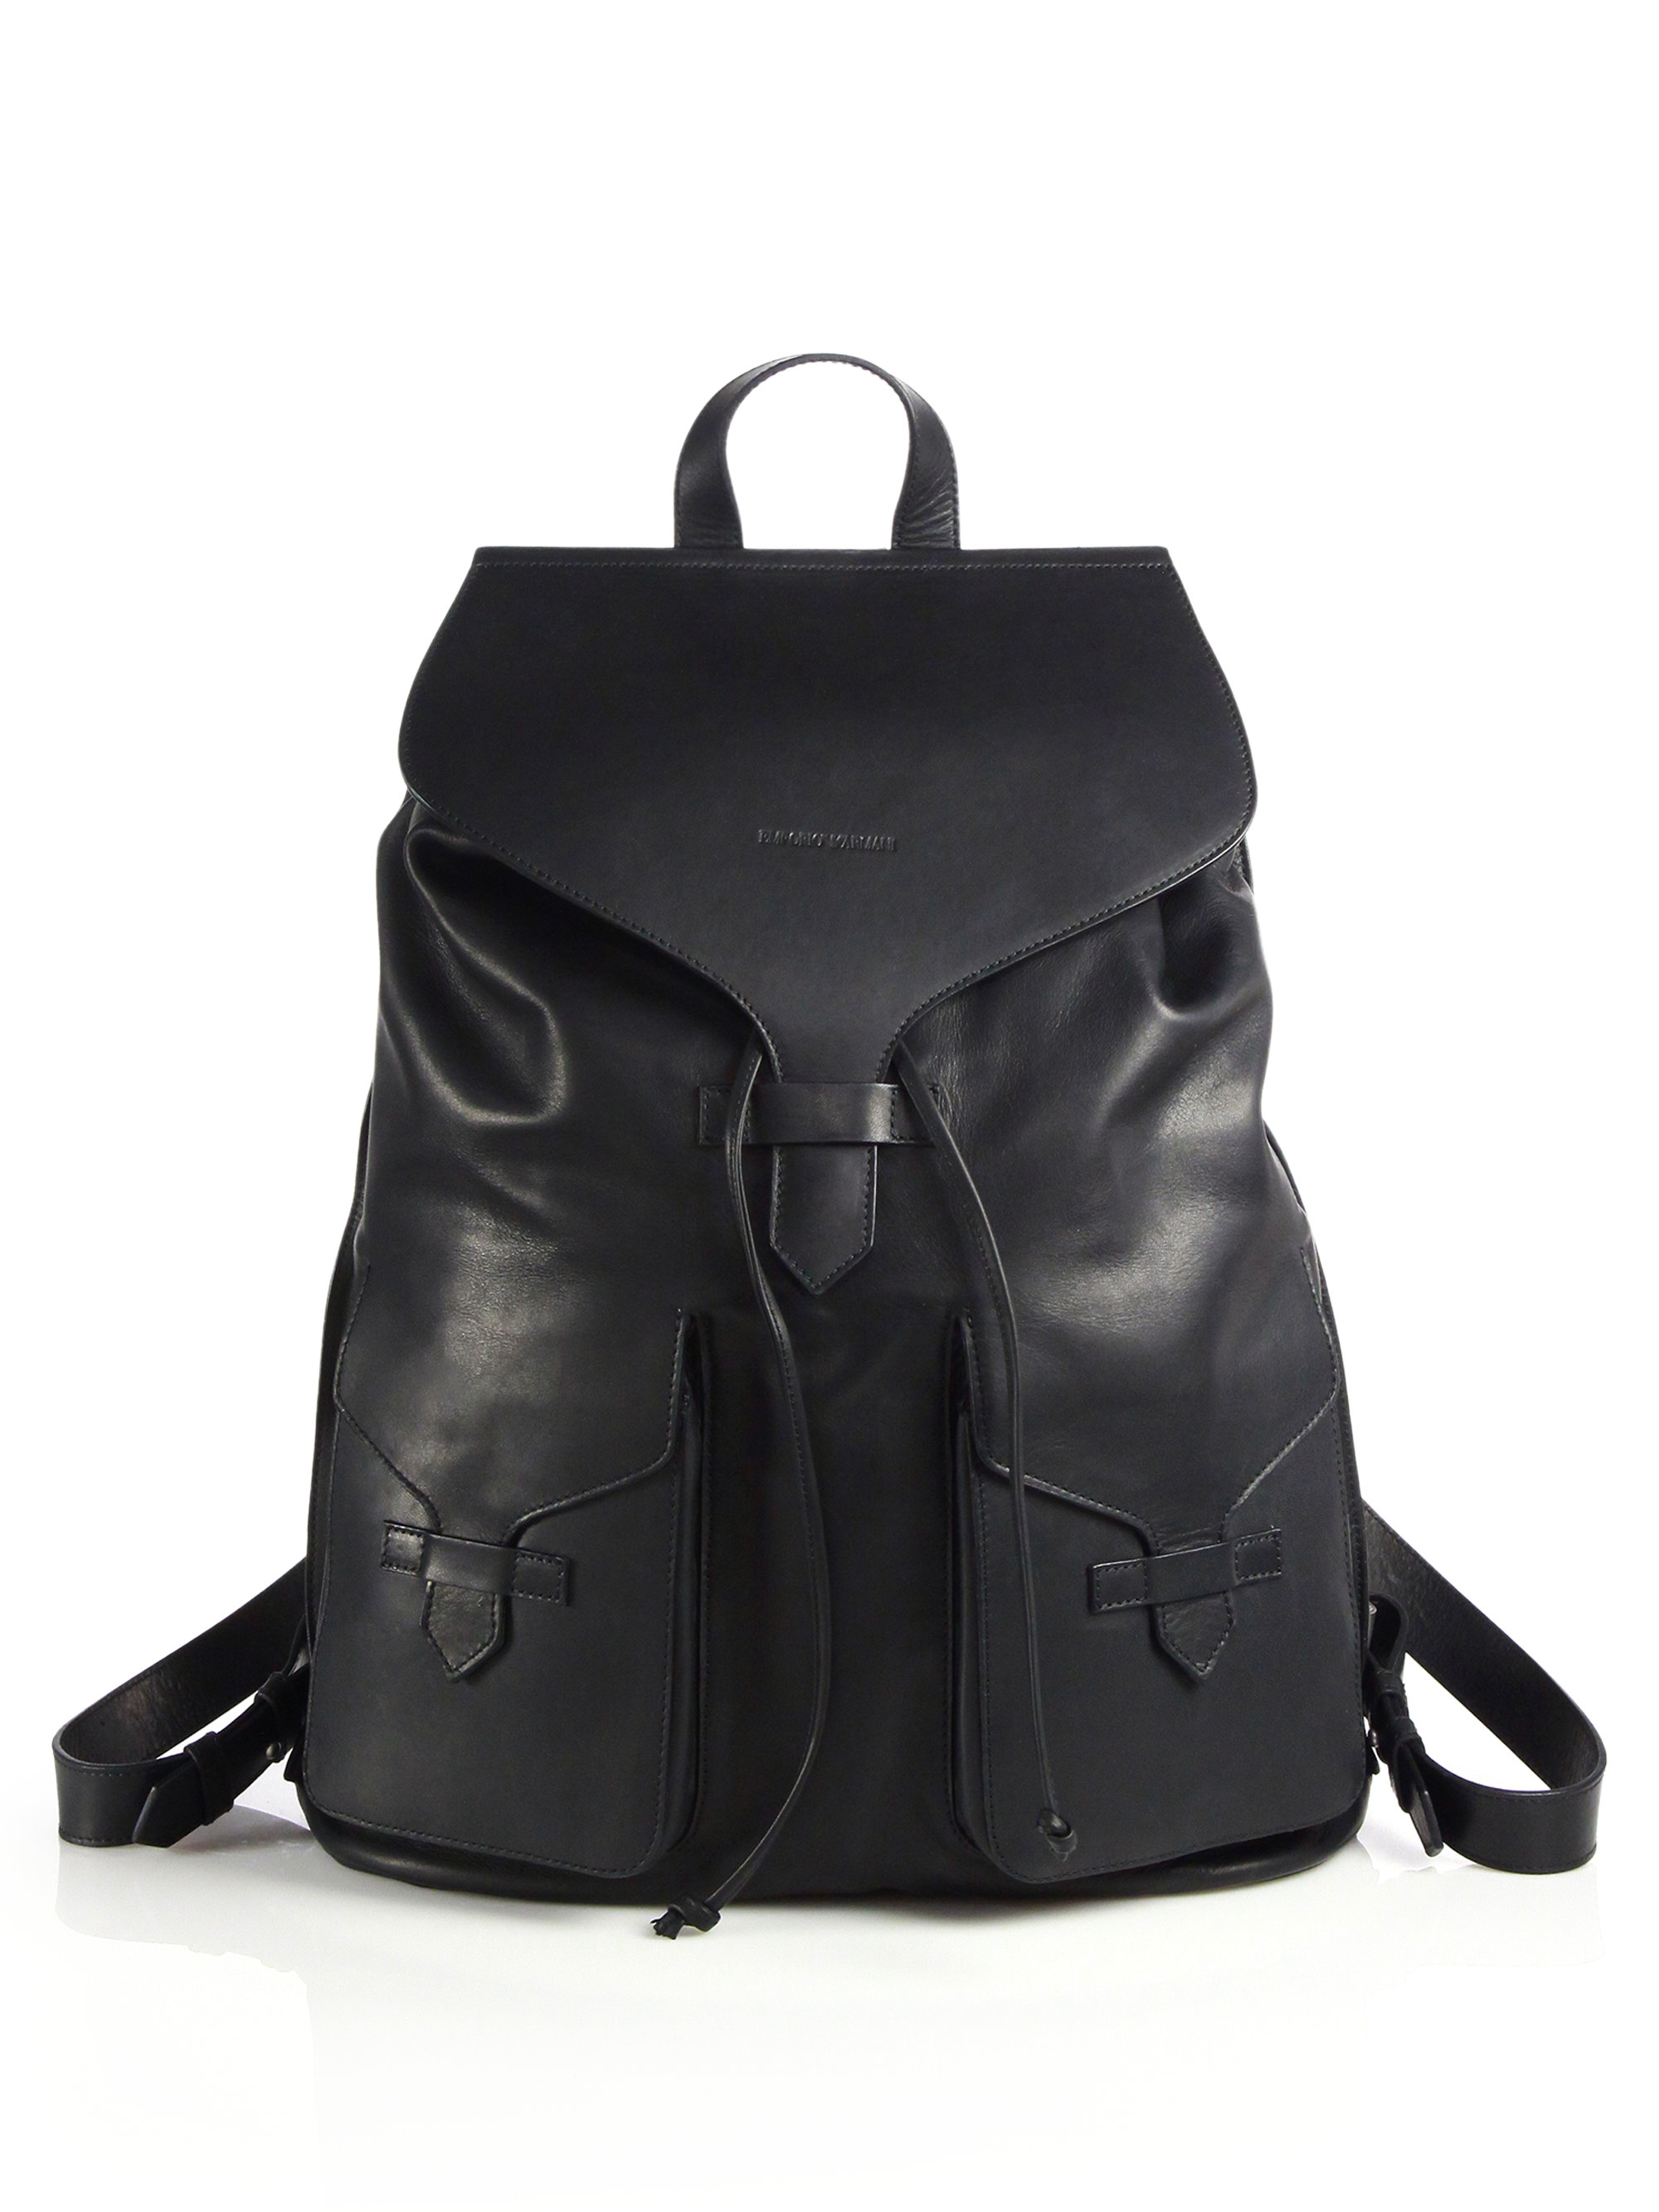 Lyst Emporio Armani Toro Leather Backpack In Black For Men